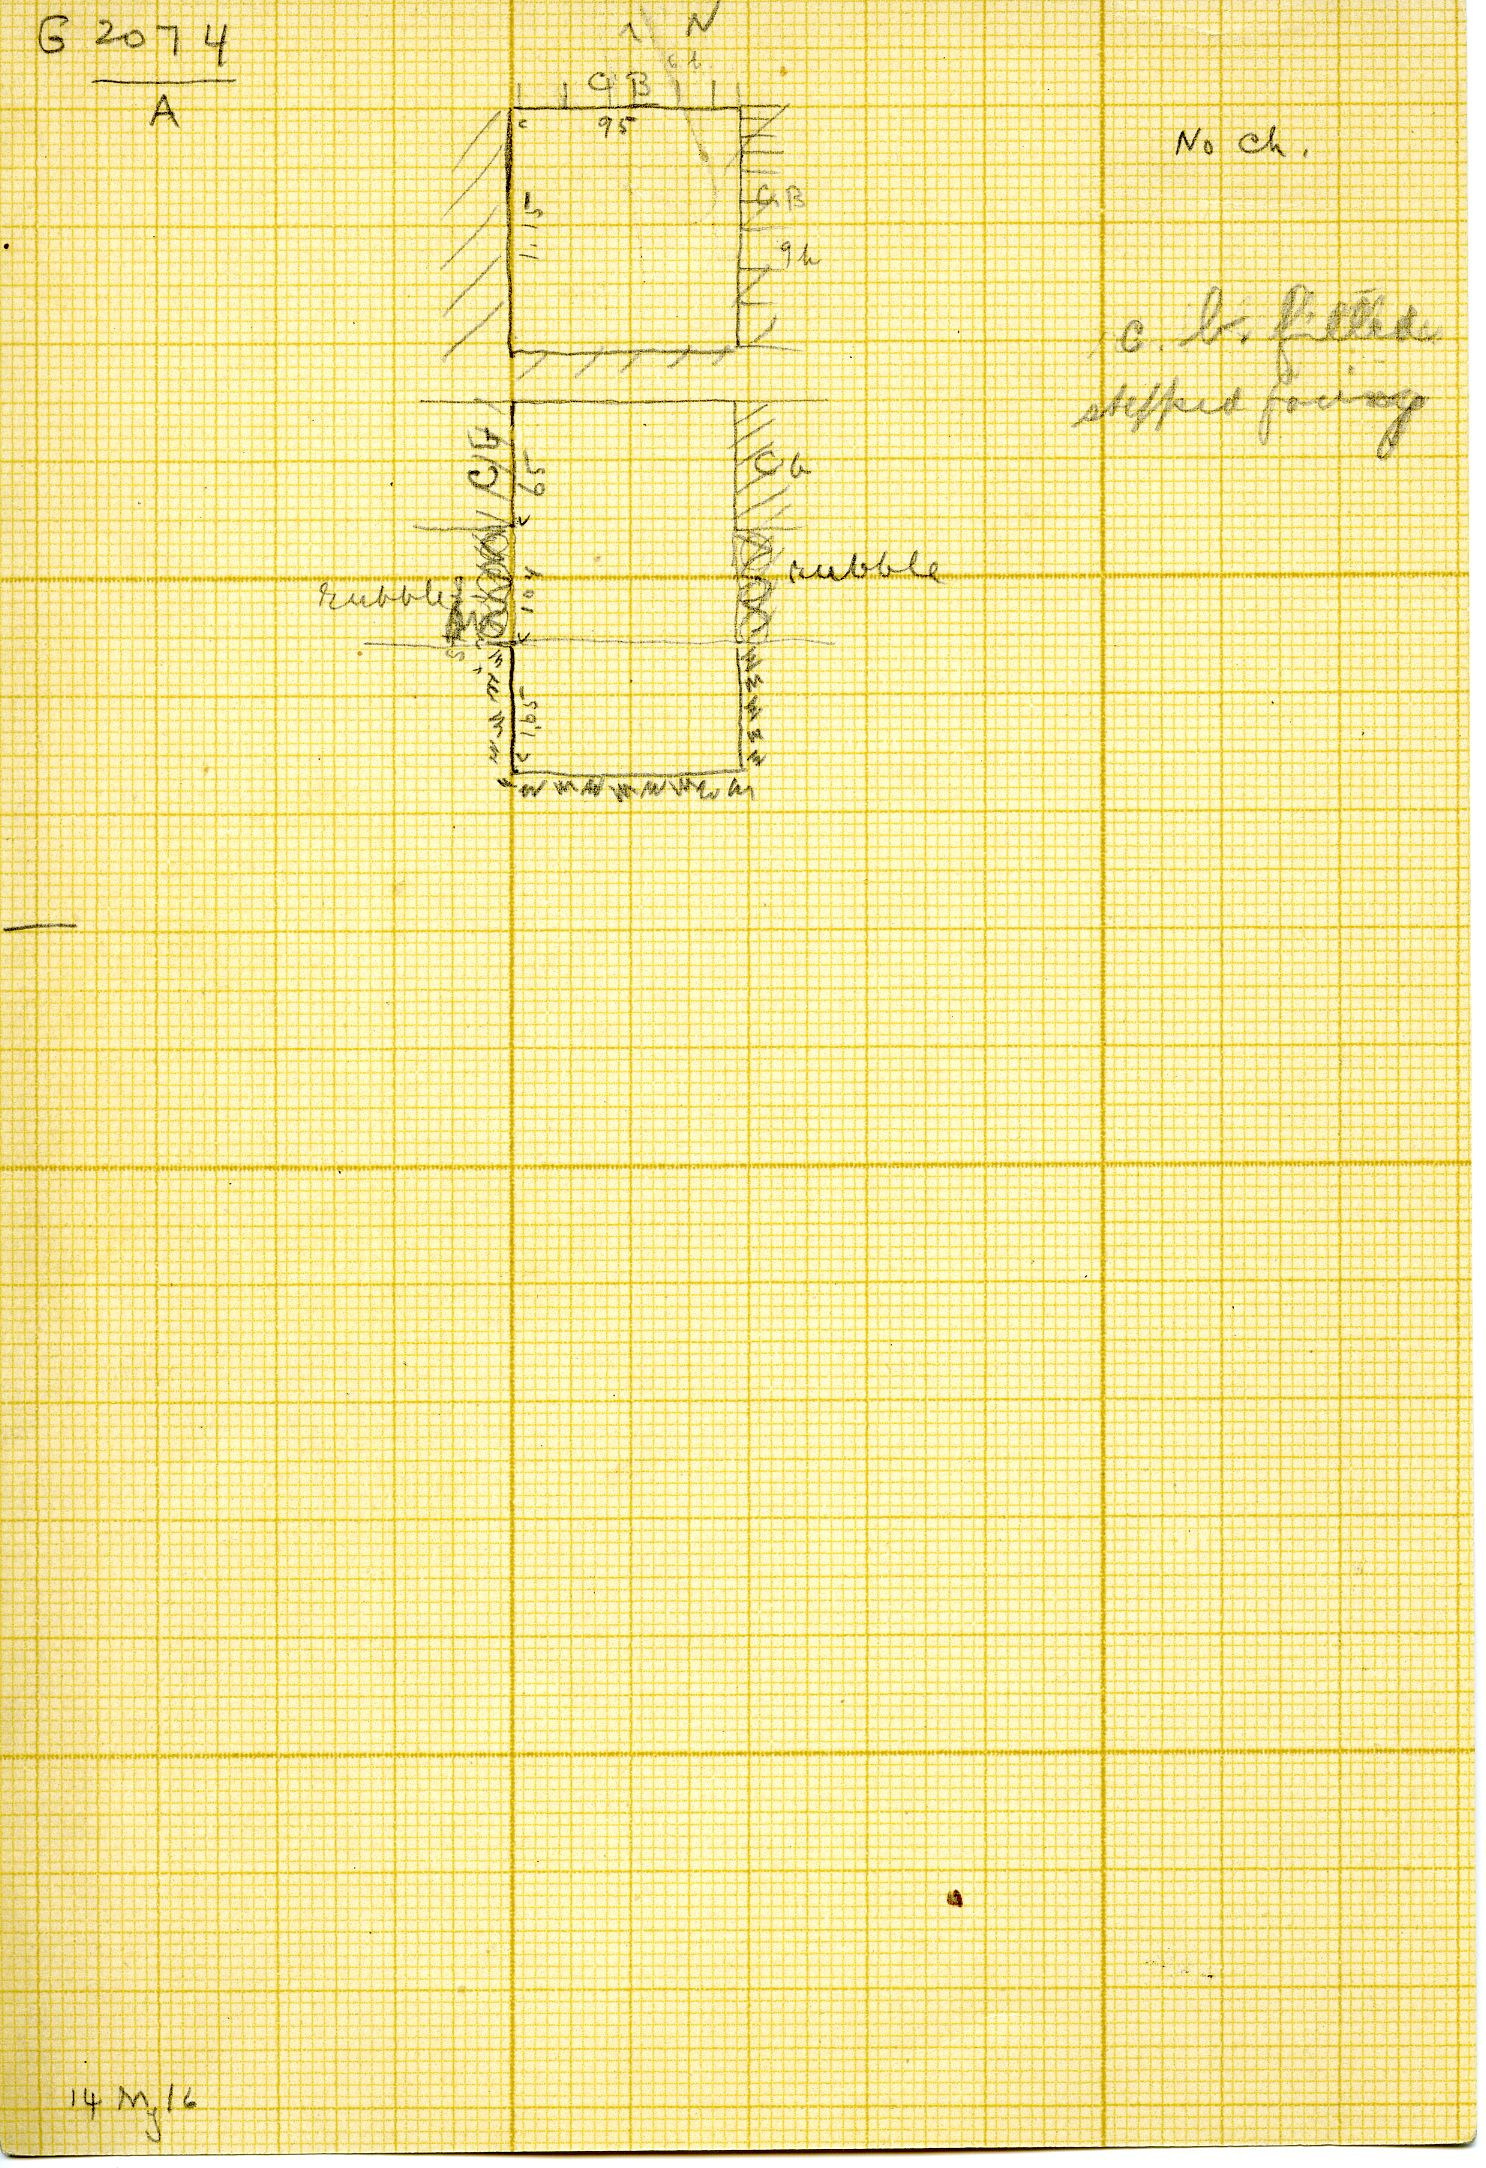 Maps and plans: G 3074, Shaft A